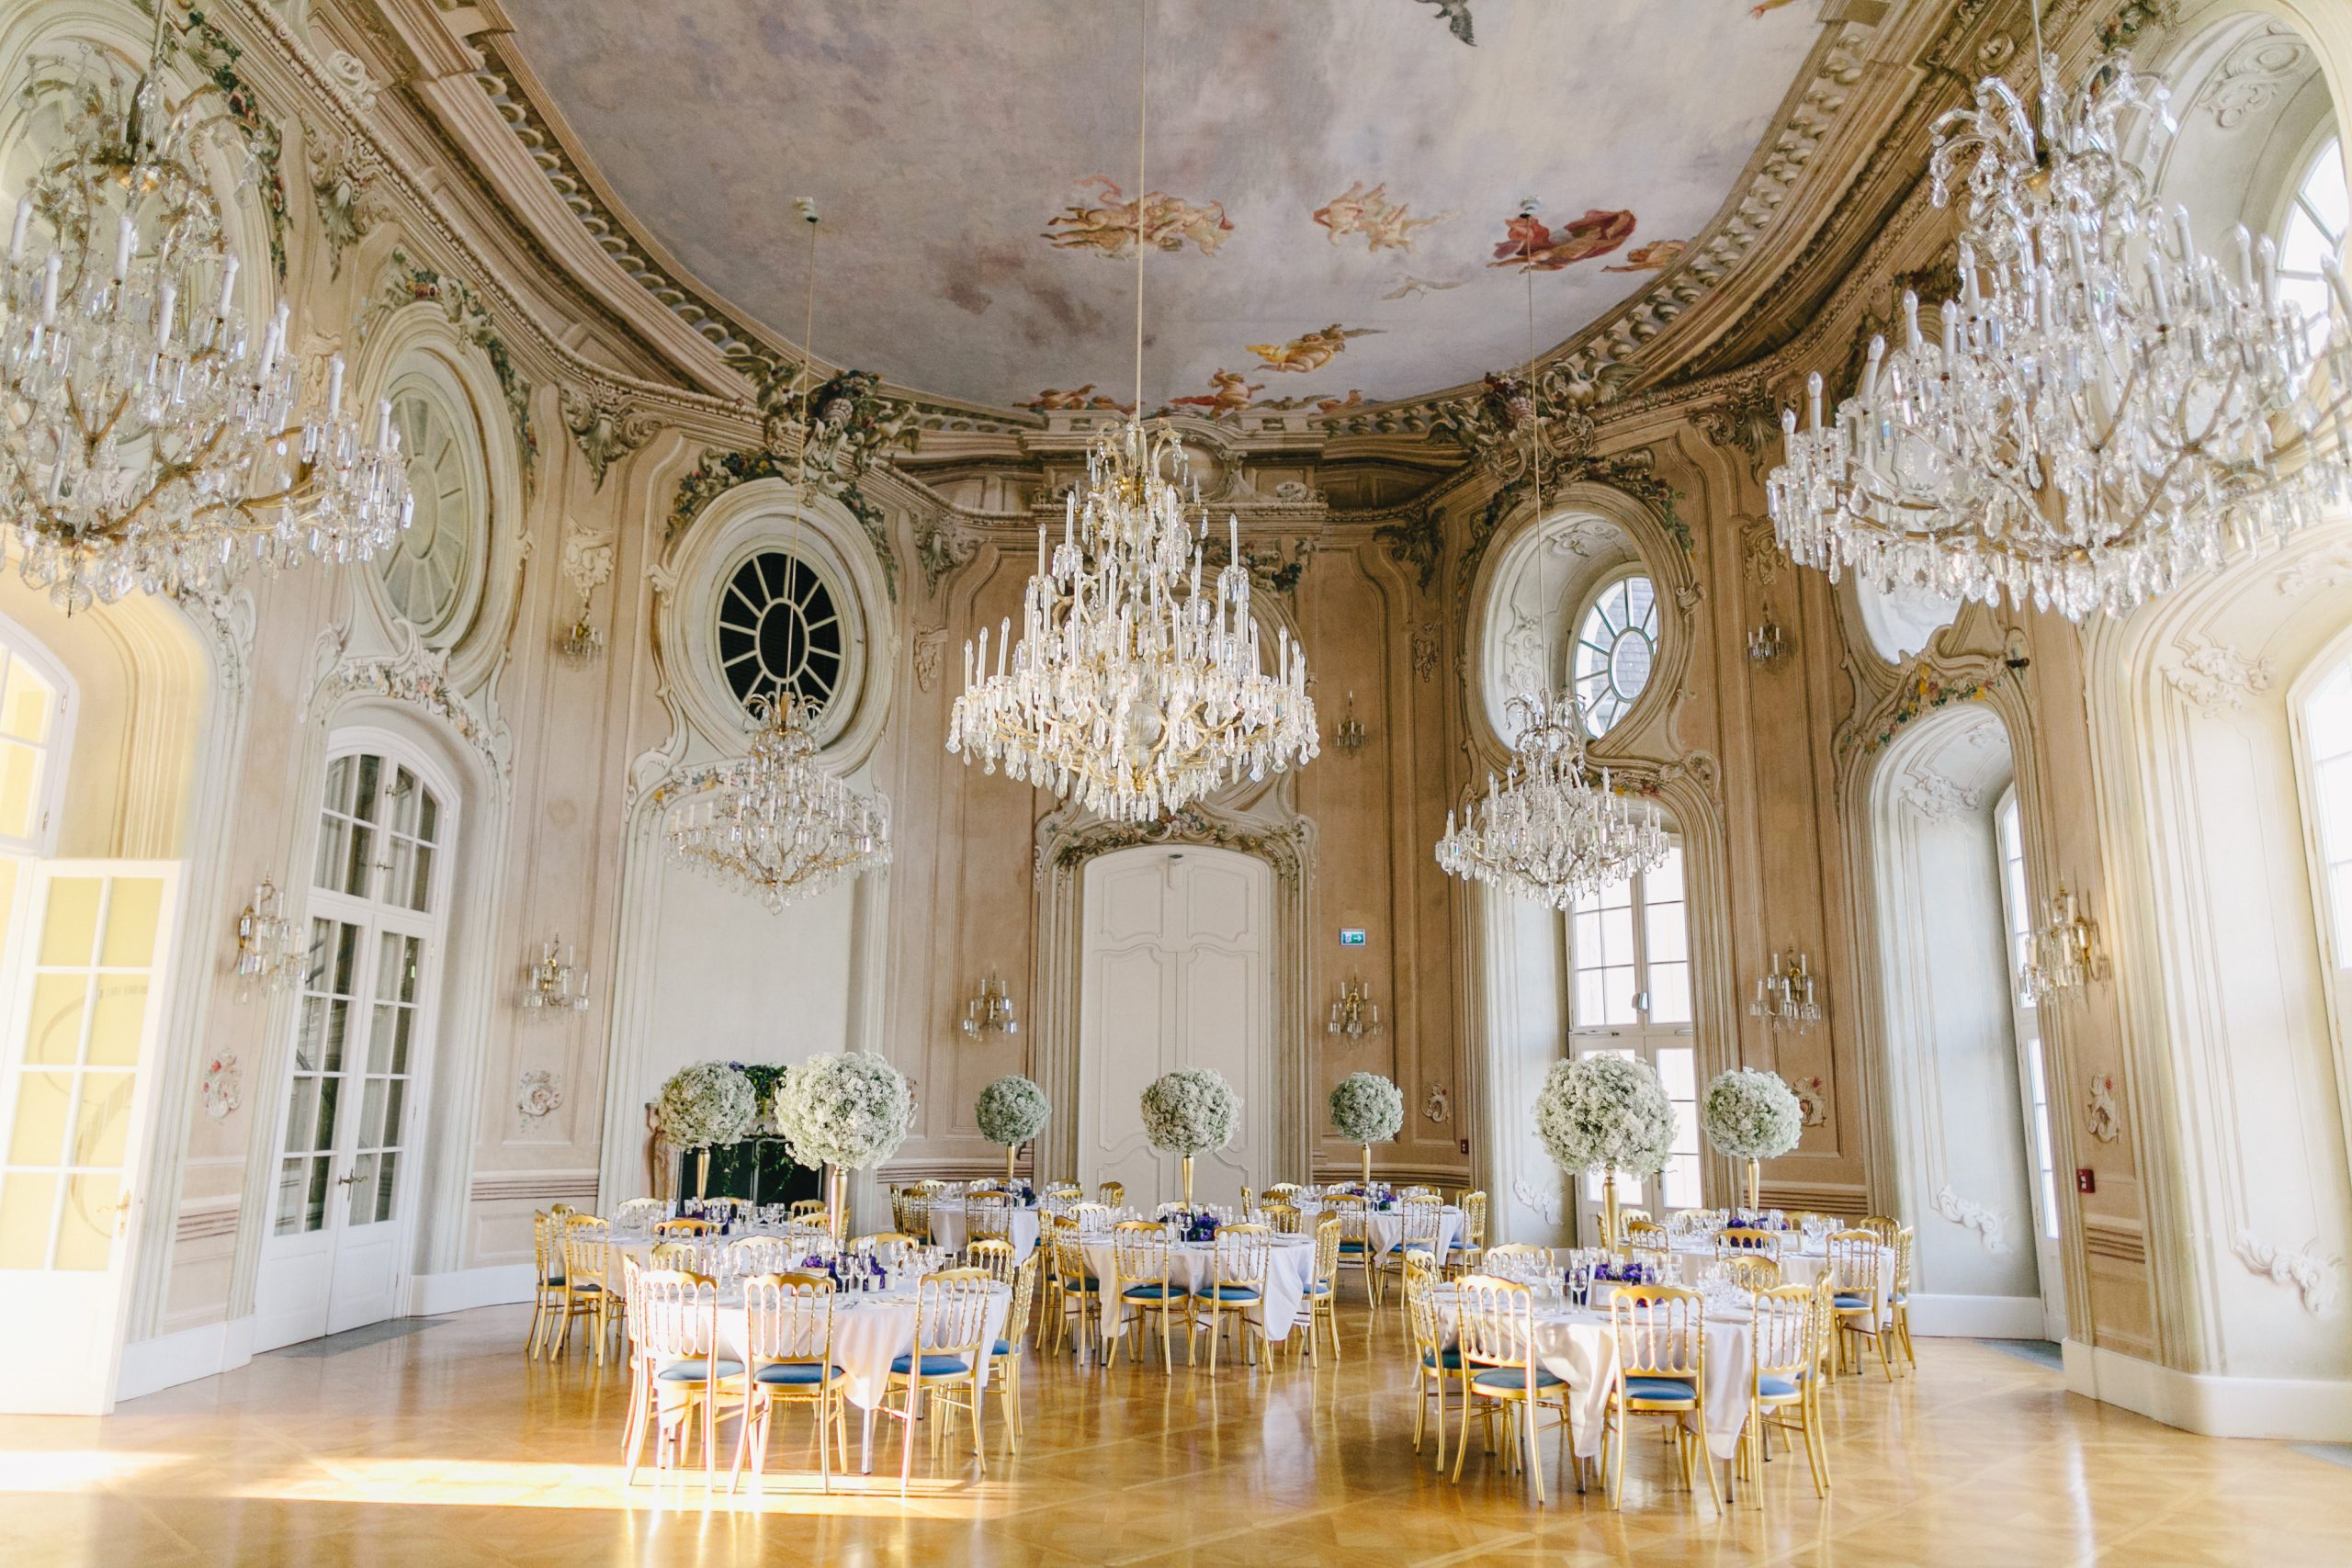 Chinese Wedding in Austria, Vienna. Castle with chandeliers and wedding flowers